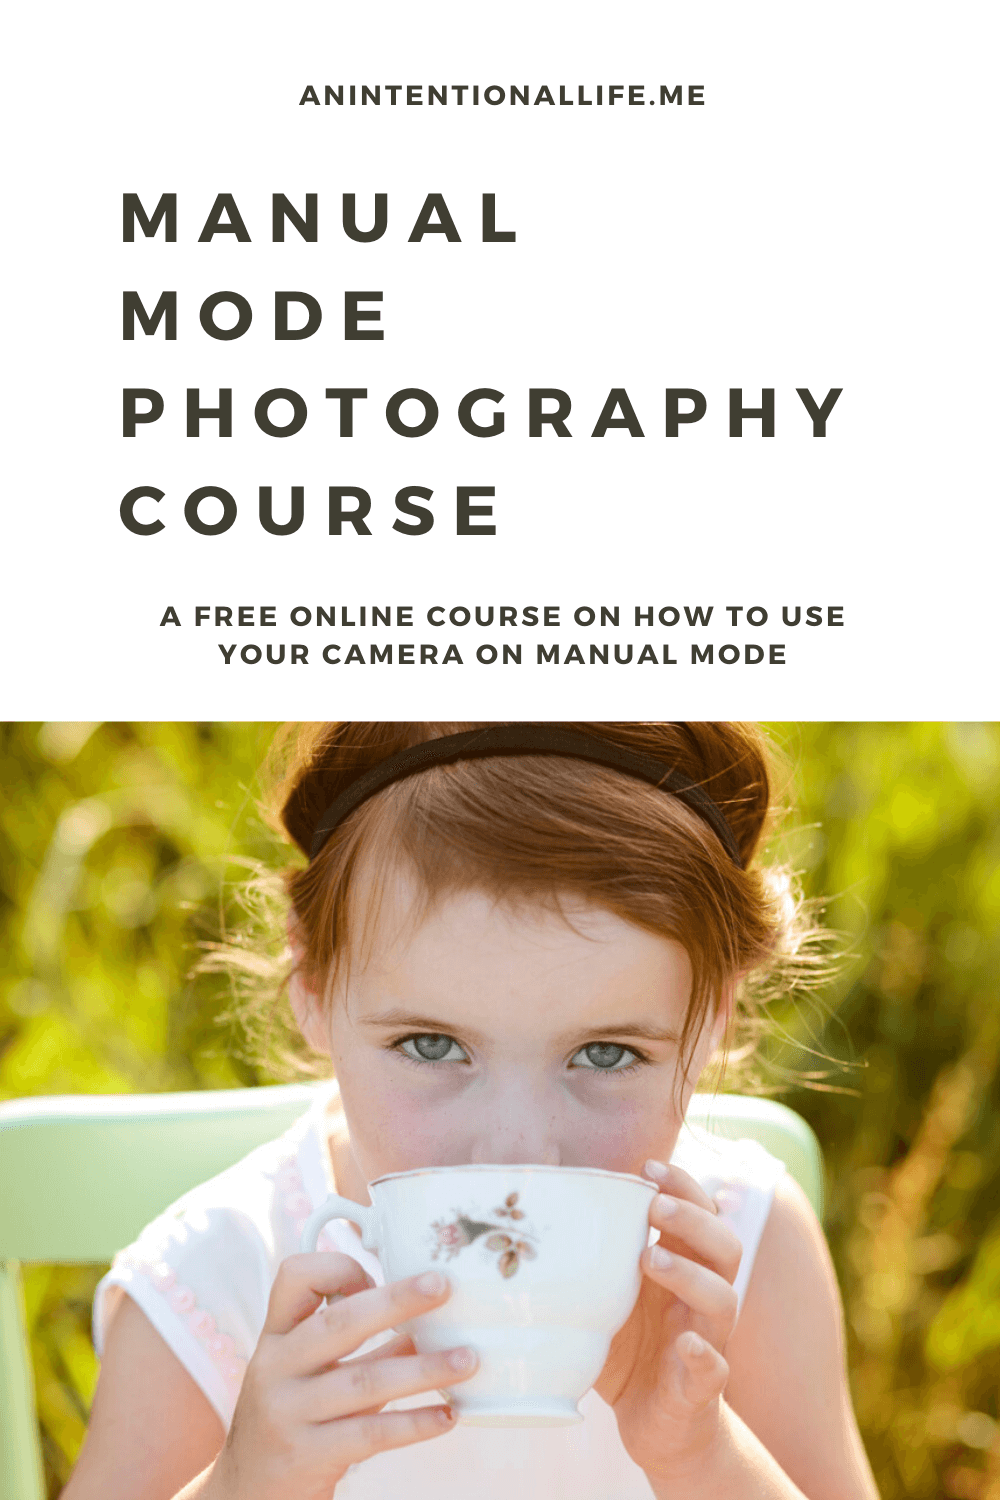 Free Manual Mode Photography Course - an easy online course teaching you how to use your camera in manual mode